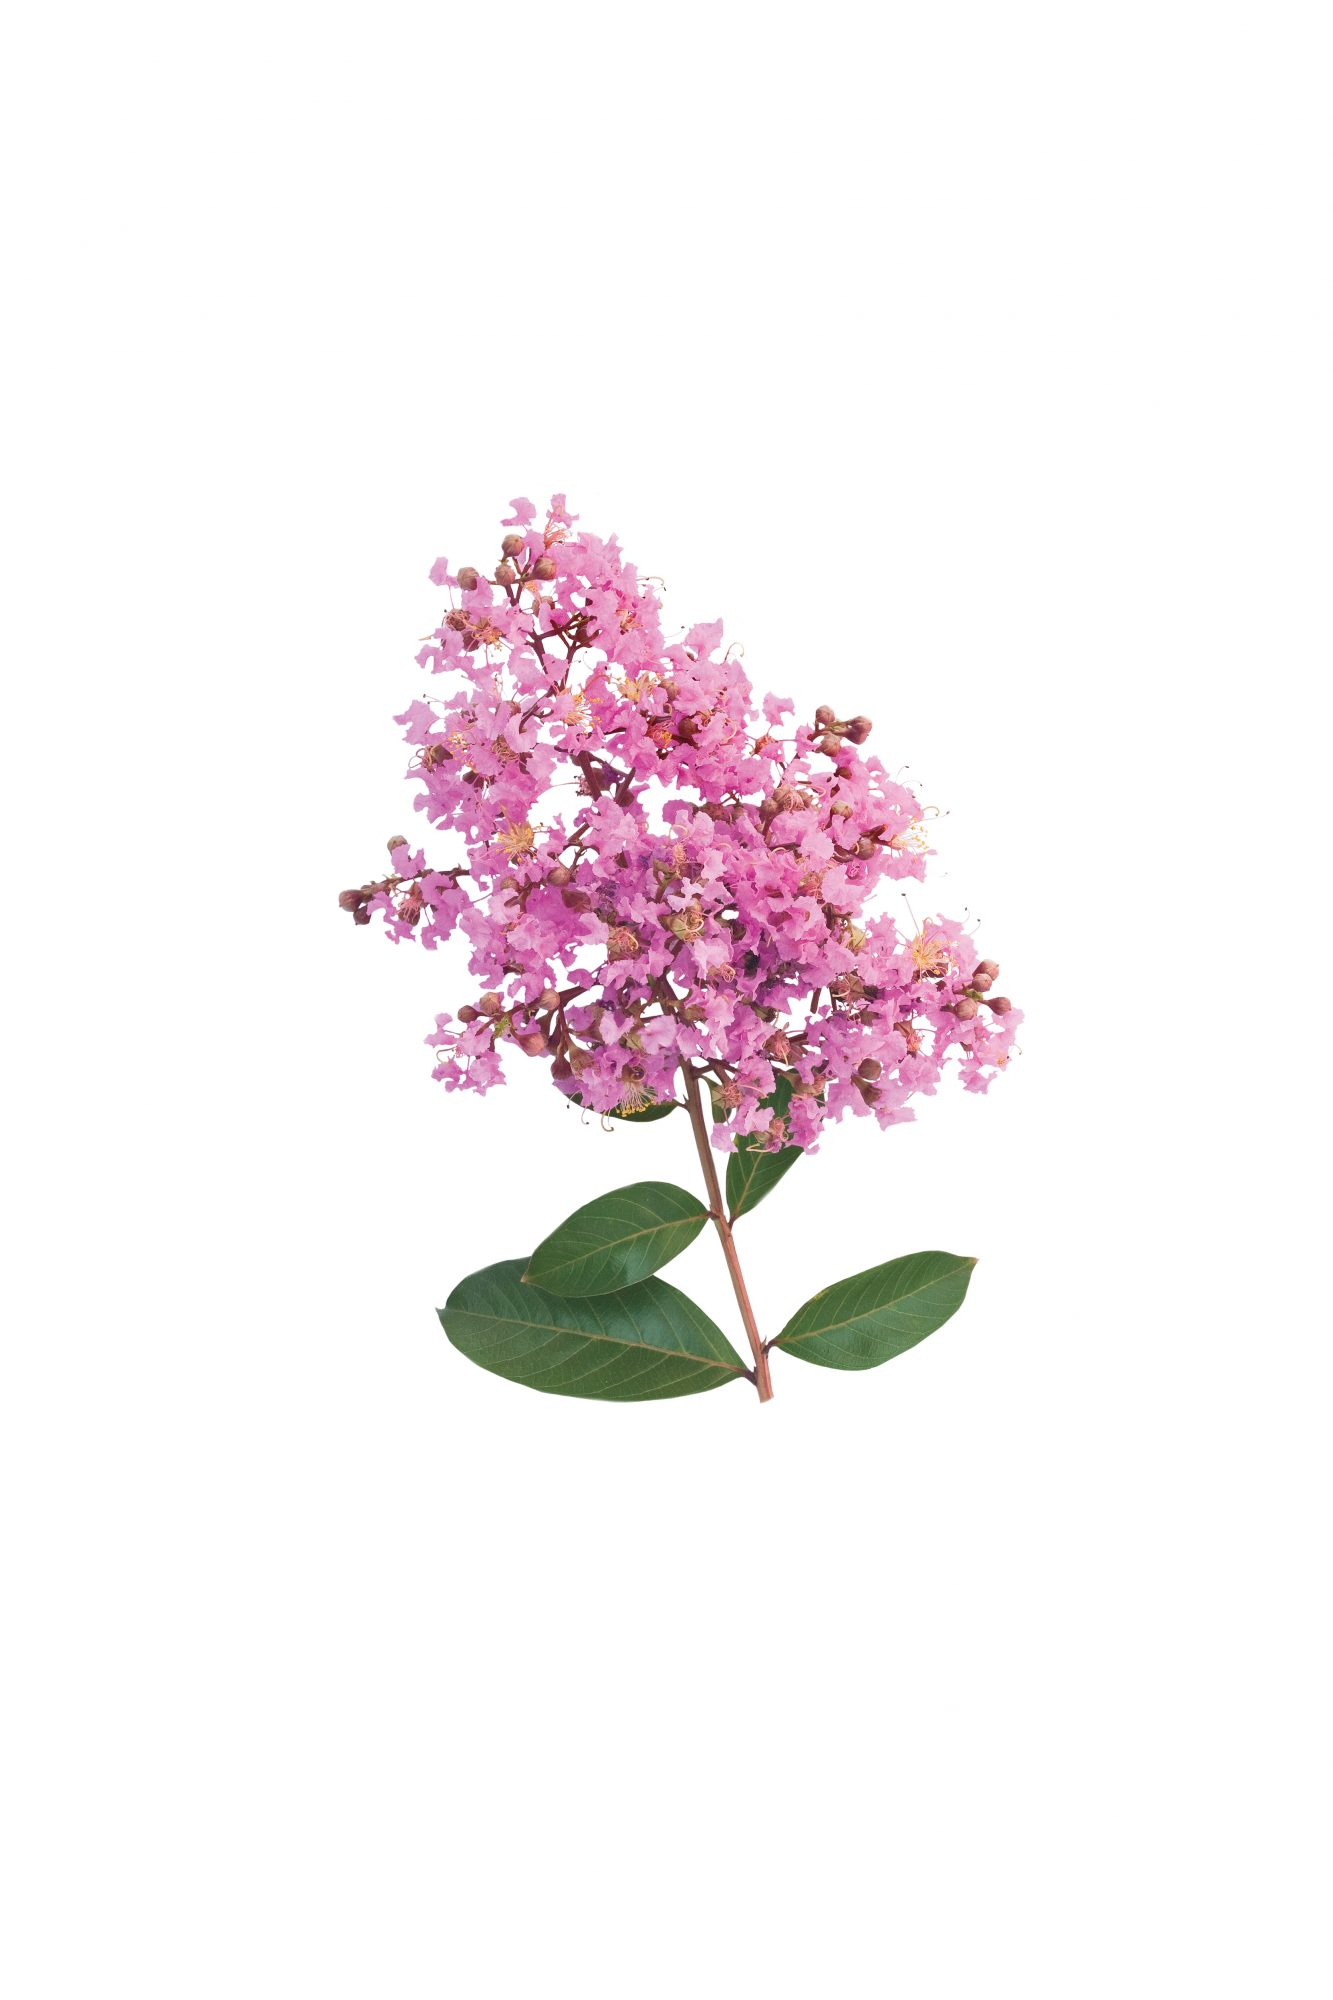 Our Favorite Crepe Myrtles: Osage